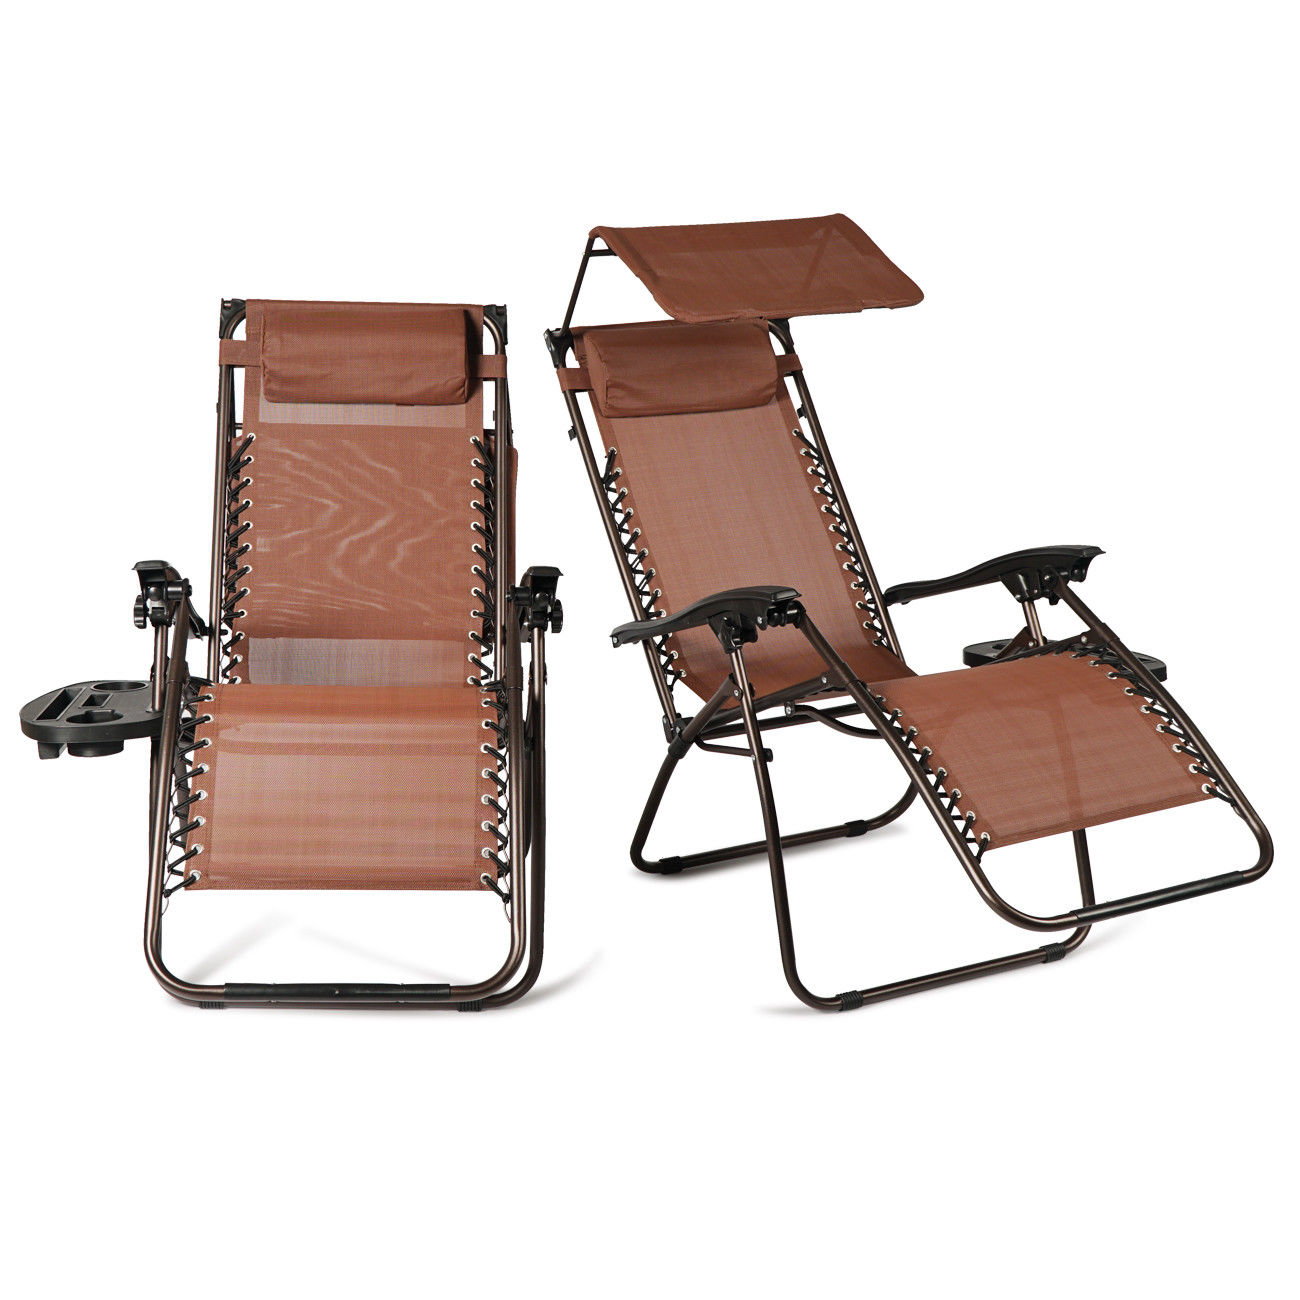 GHP 2-Pcs 600D UV-Resistant Brown Recliner Lounge Chair with Cup Holder & Canopy